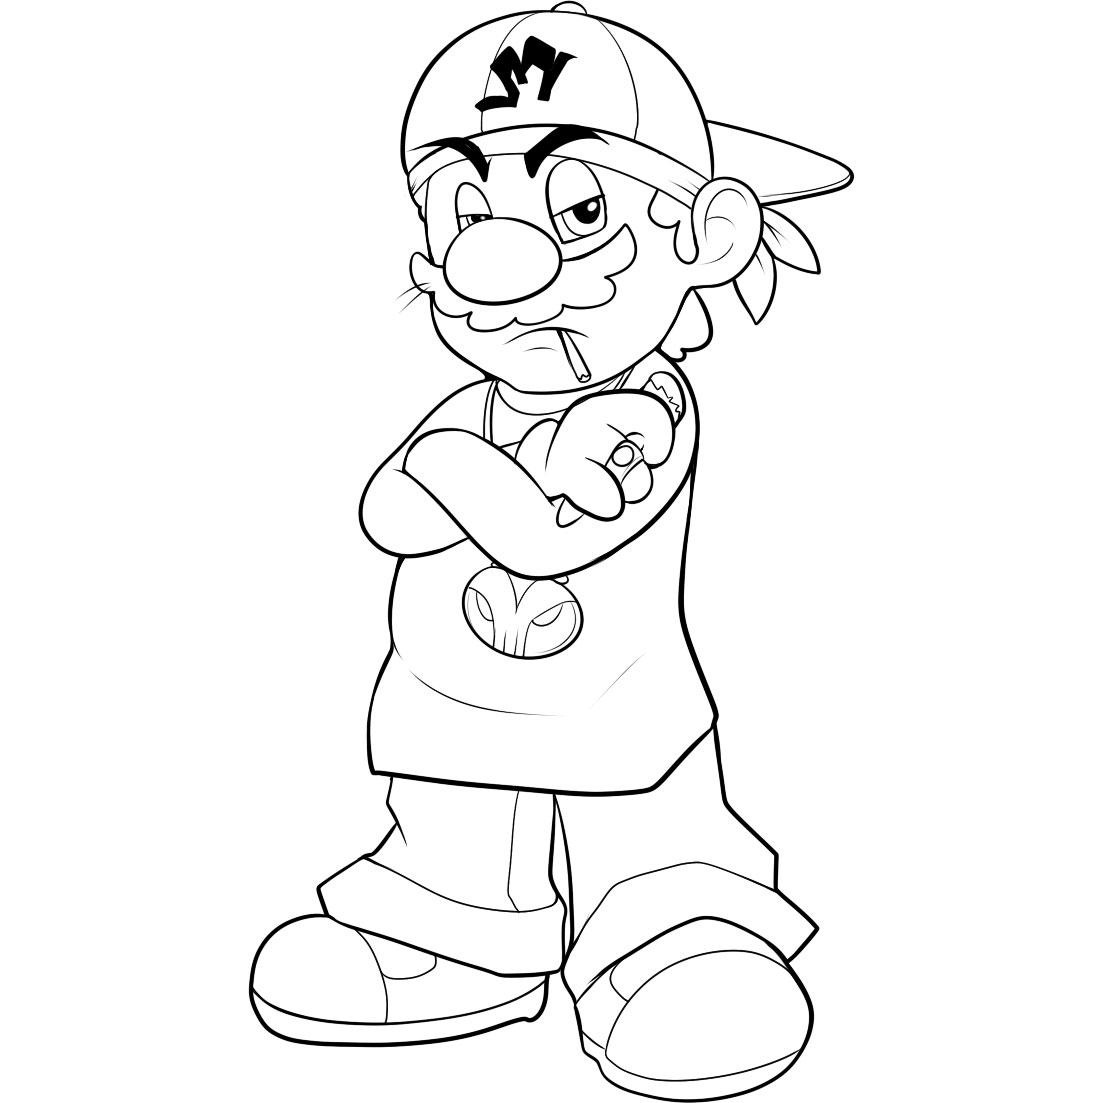 1103x1103 free printable mario coloring pages for kids